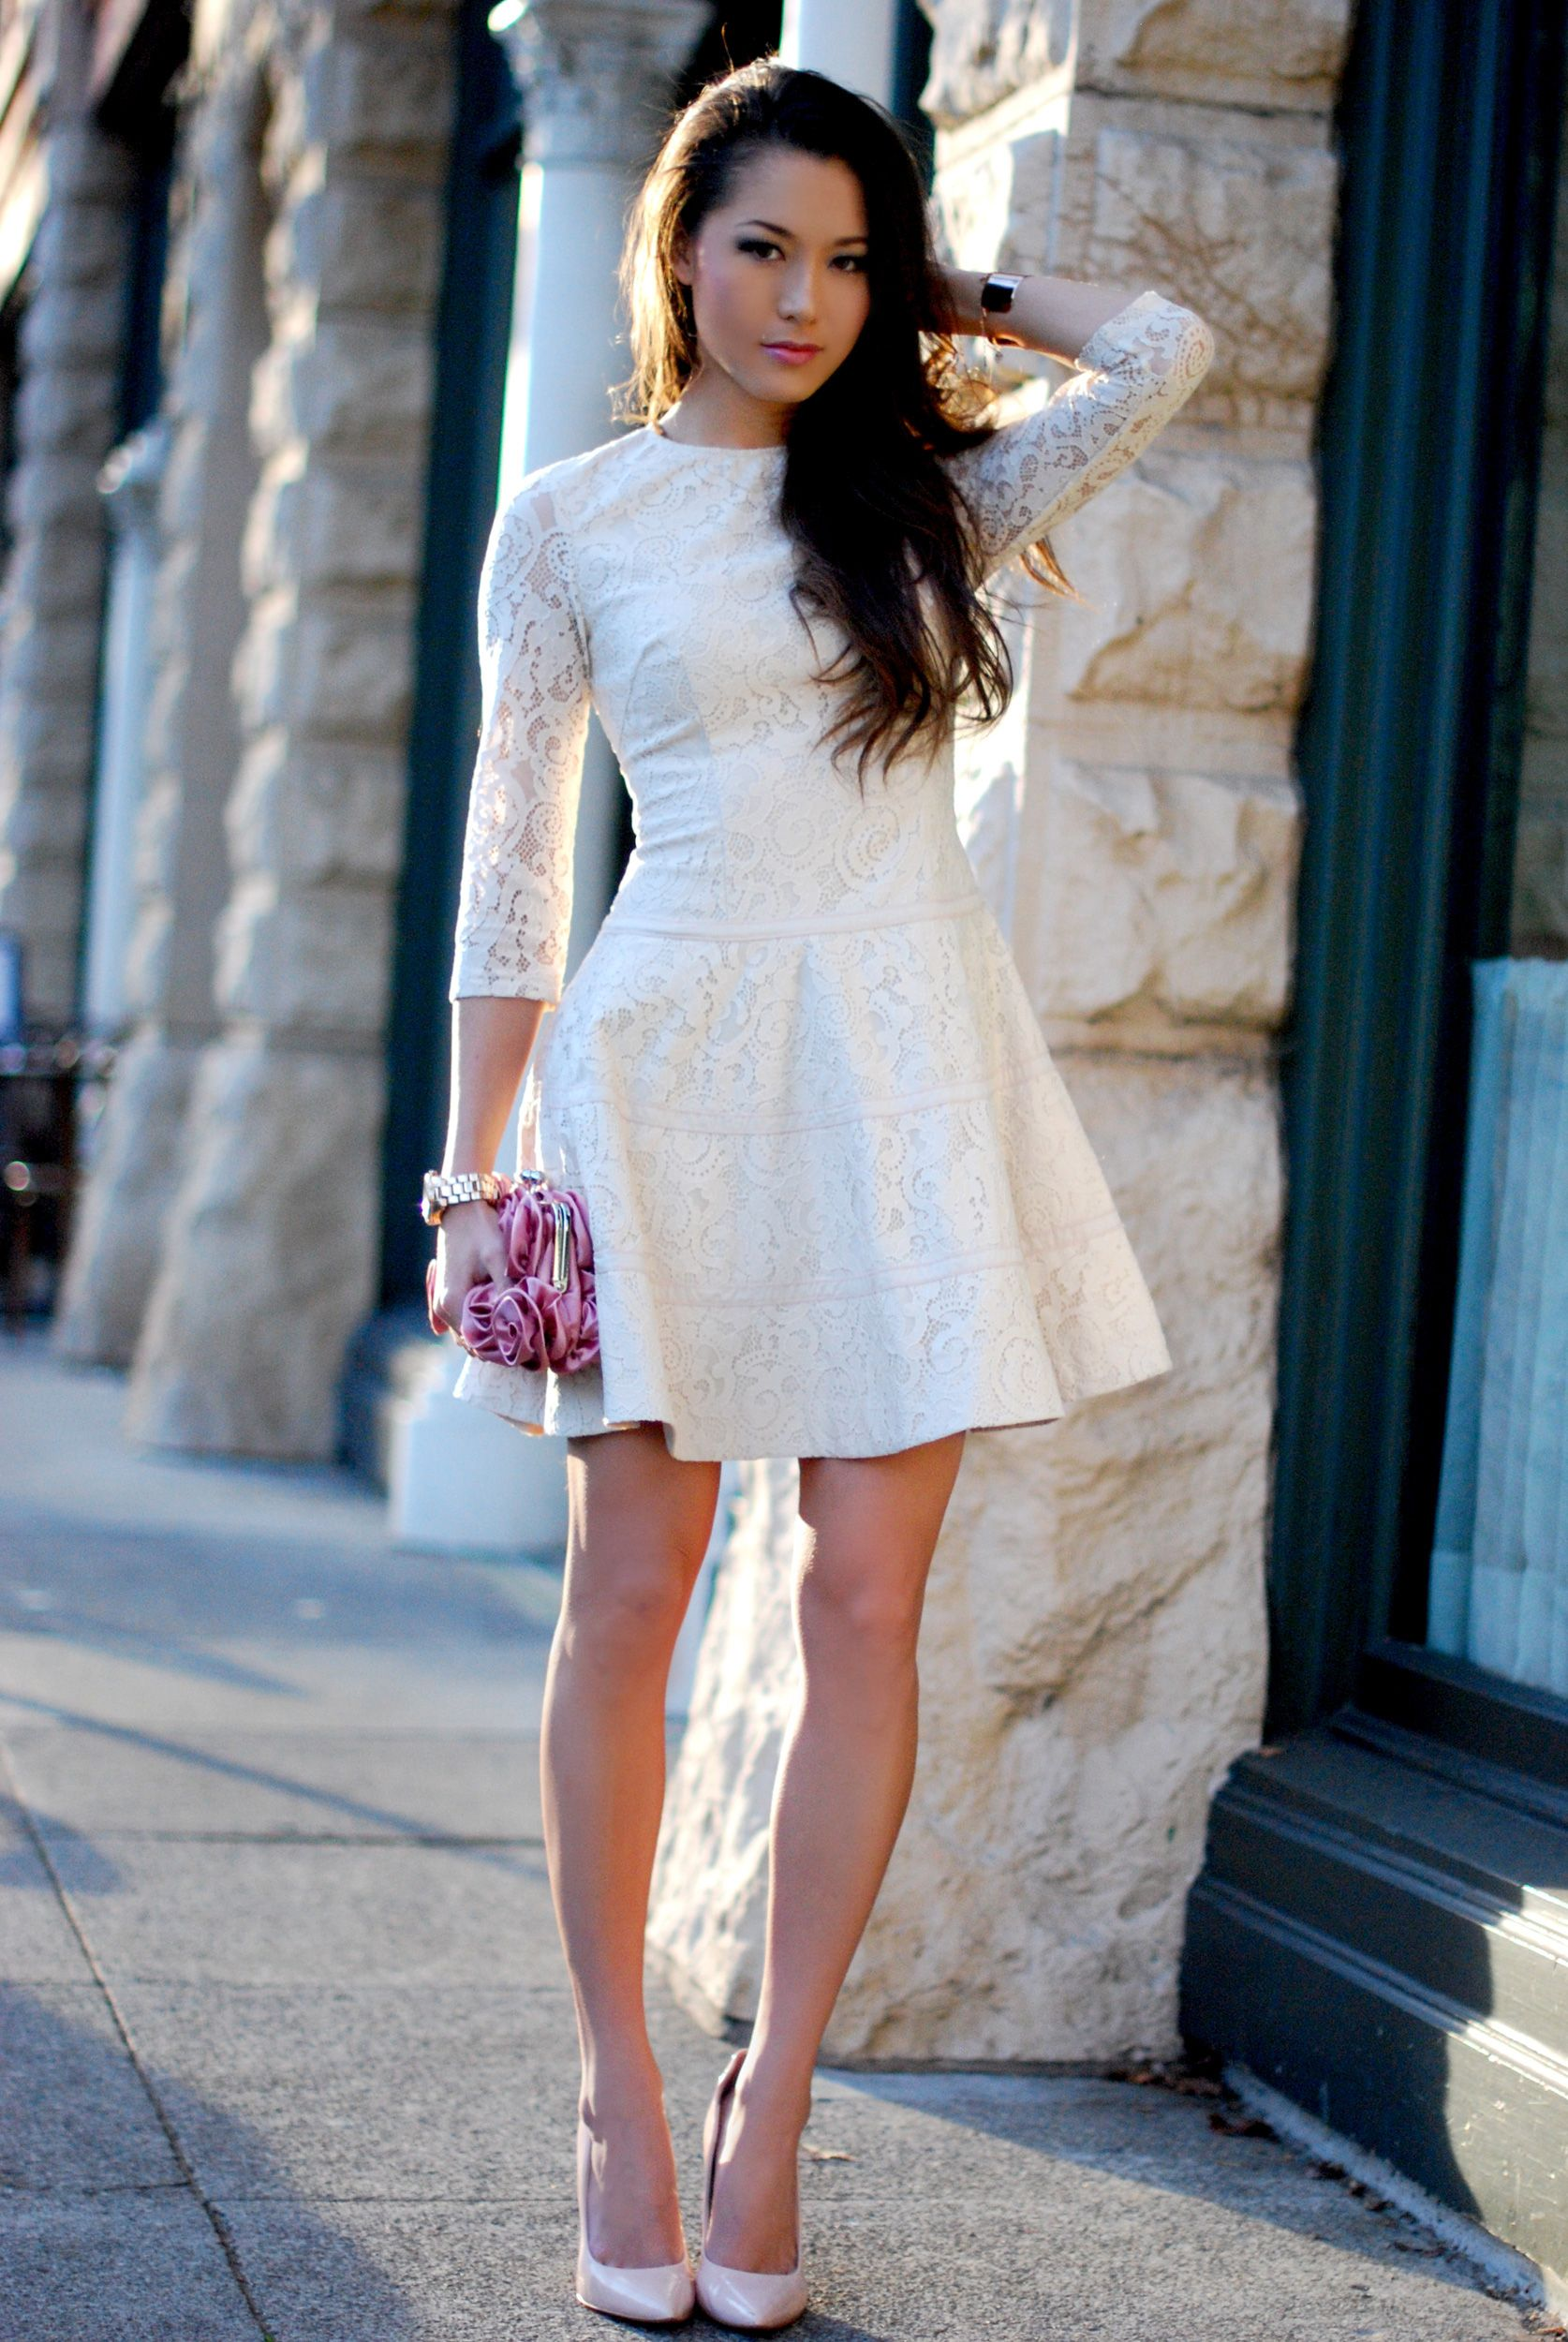 57567101e7dc2 Jessica from Hapa Time rocking our Lace 3 4 Sleeve Fit   Flare Dress!  vday   outfitinspiration